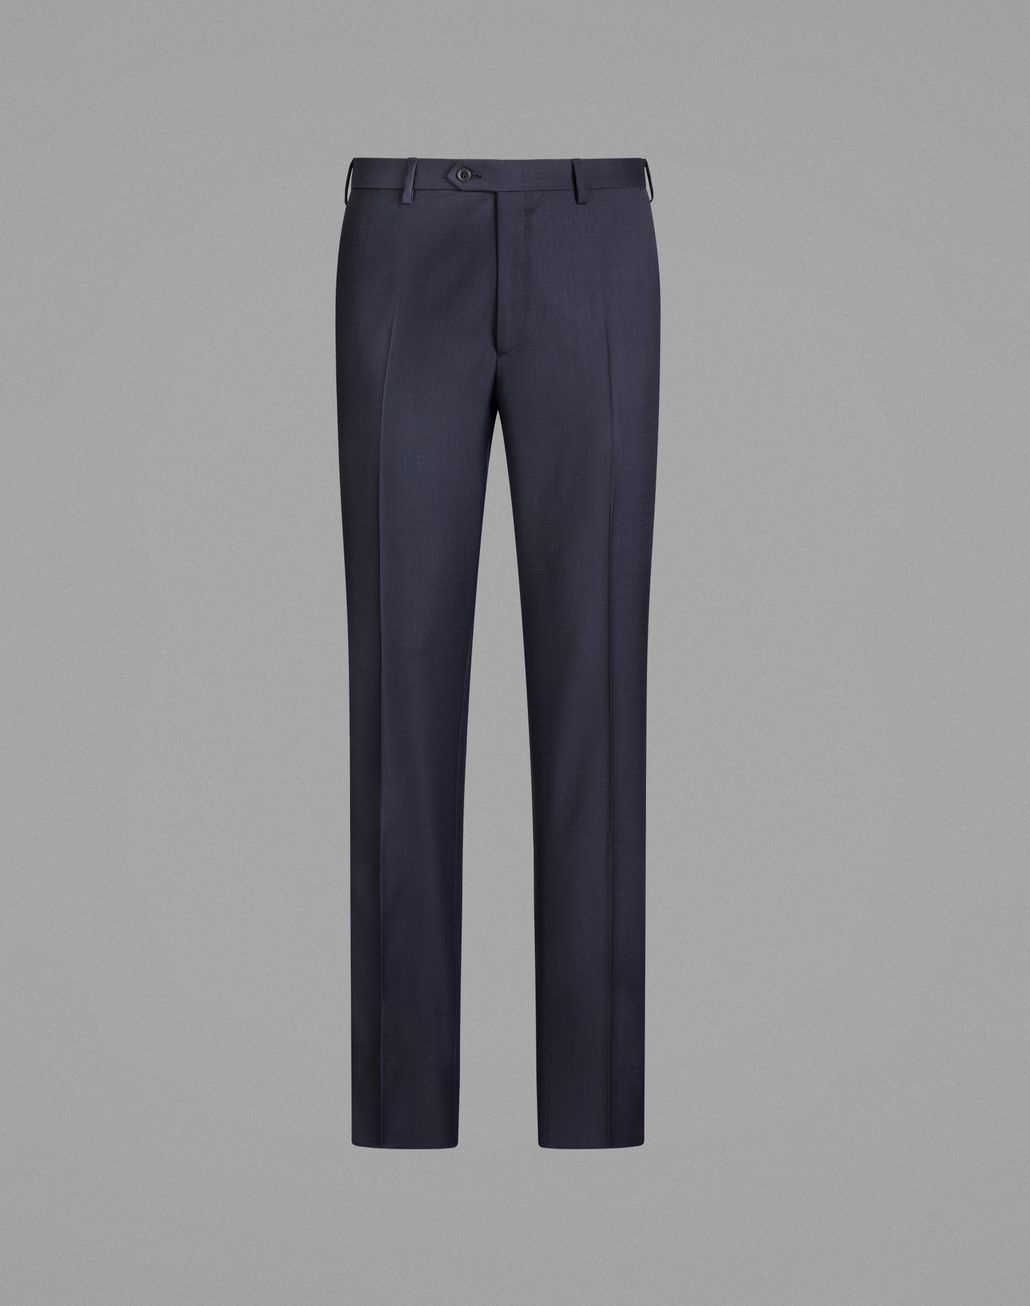 BRIONI  'Essential' Navy Blue Tigullio Trousers Trousers Man f